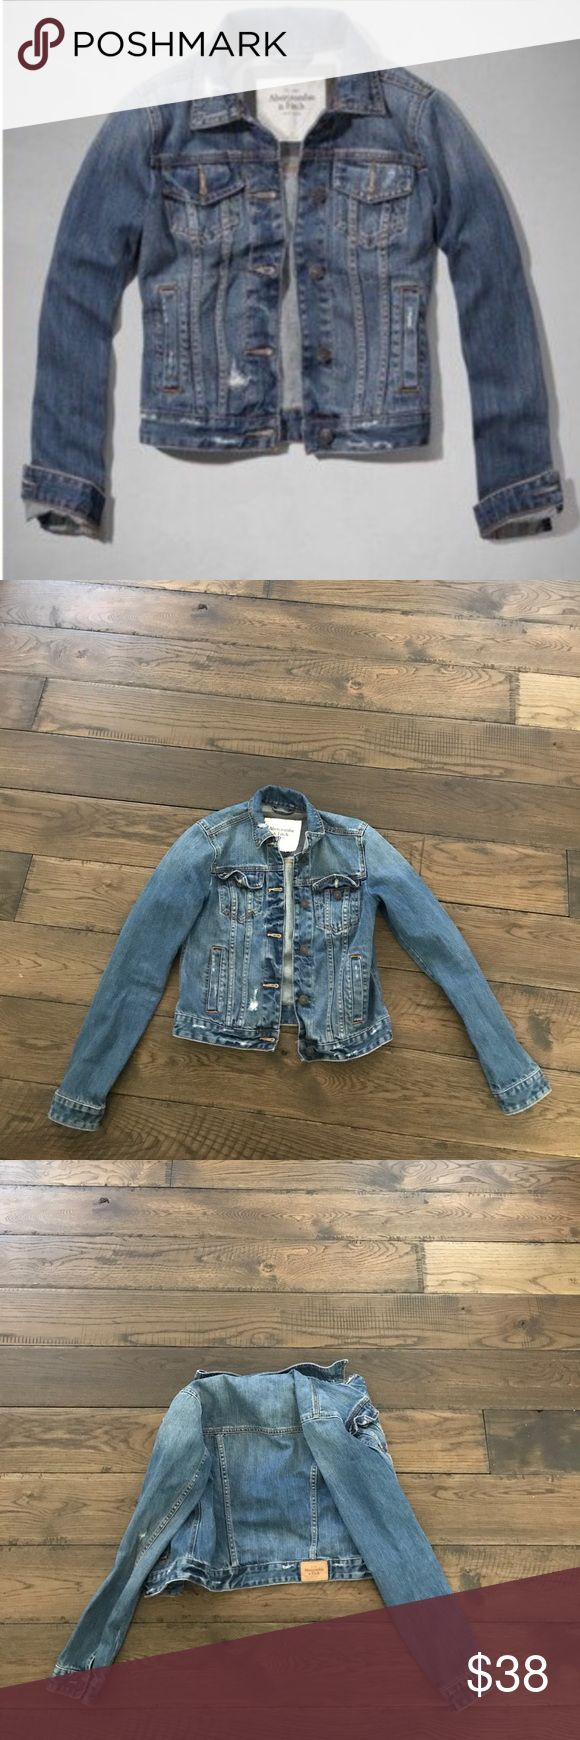 Abercrombie and Fitch Jean jacket- size medium Medium wash, distressed jean jacket. In perfect condition, looks like it was never worn! Size M. Abercrombie & Fitch Jackets & Coats Jean Jackets